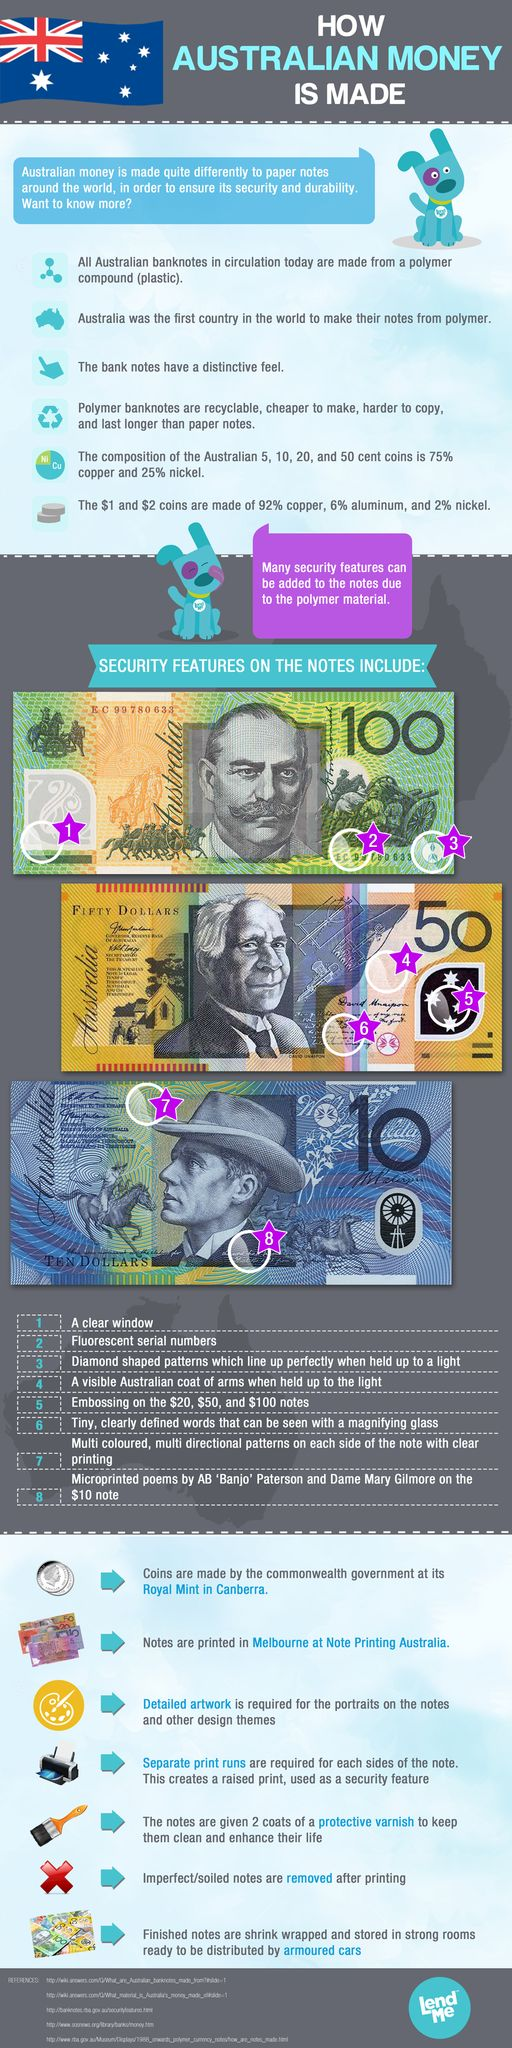 How Australian Money is Made #Infographic #Australia #Money